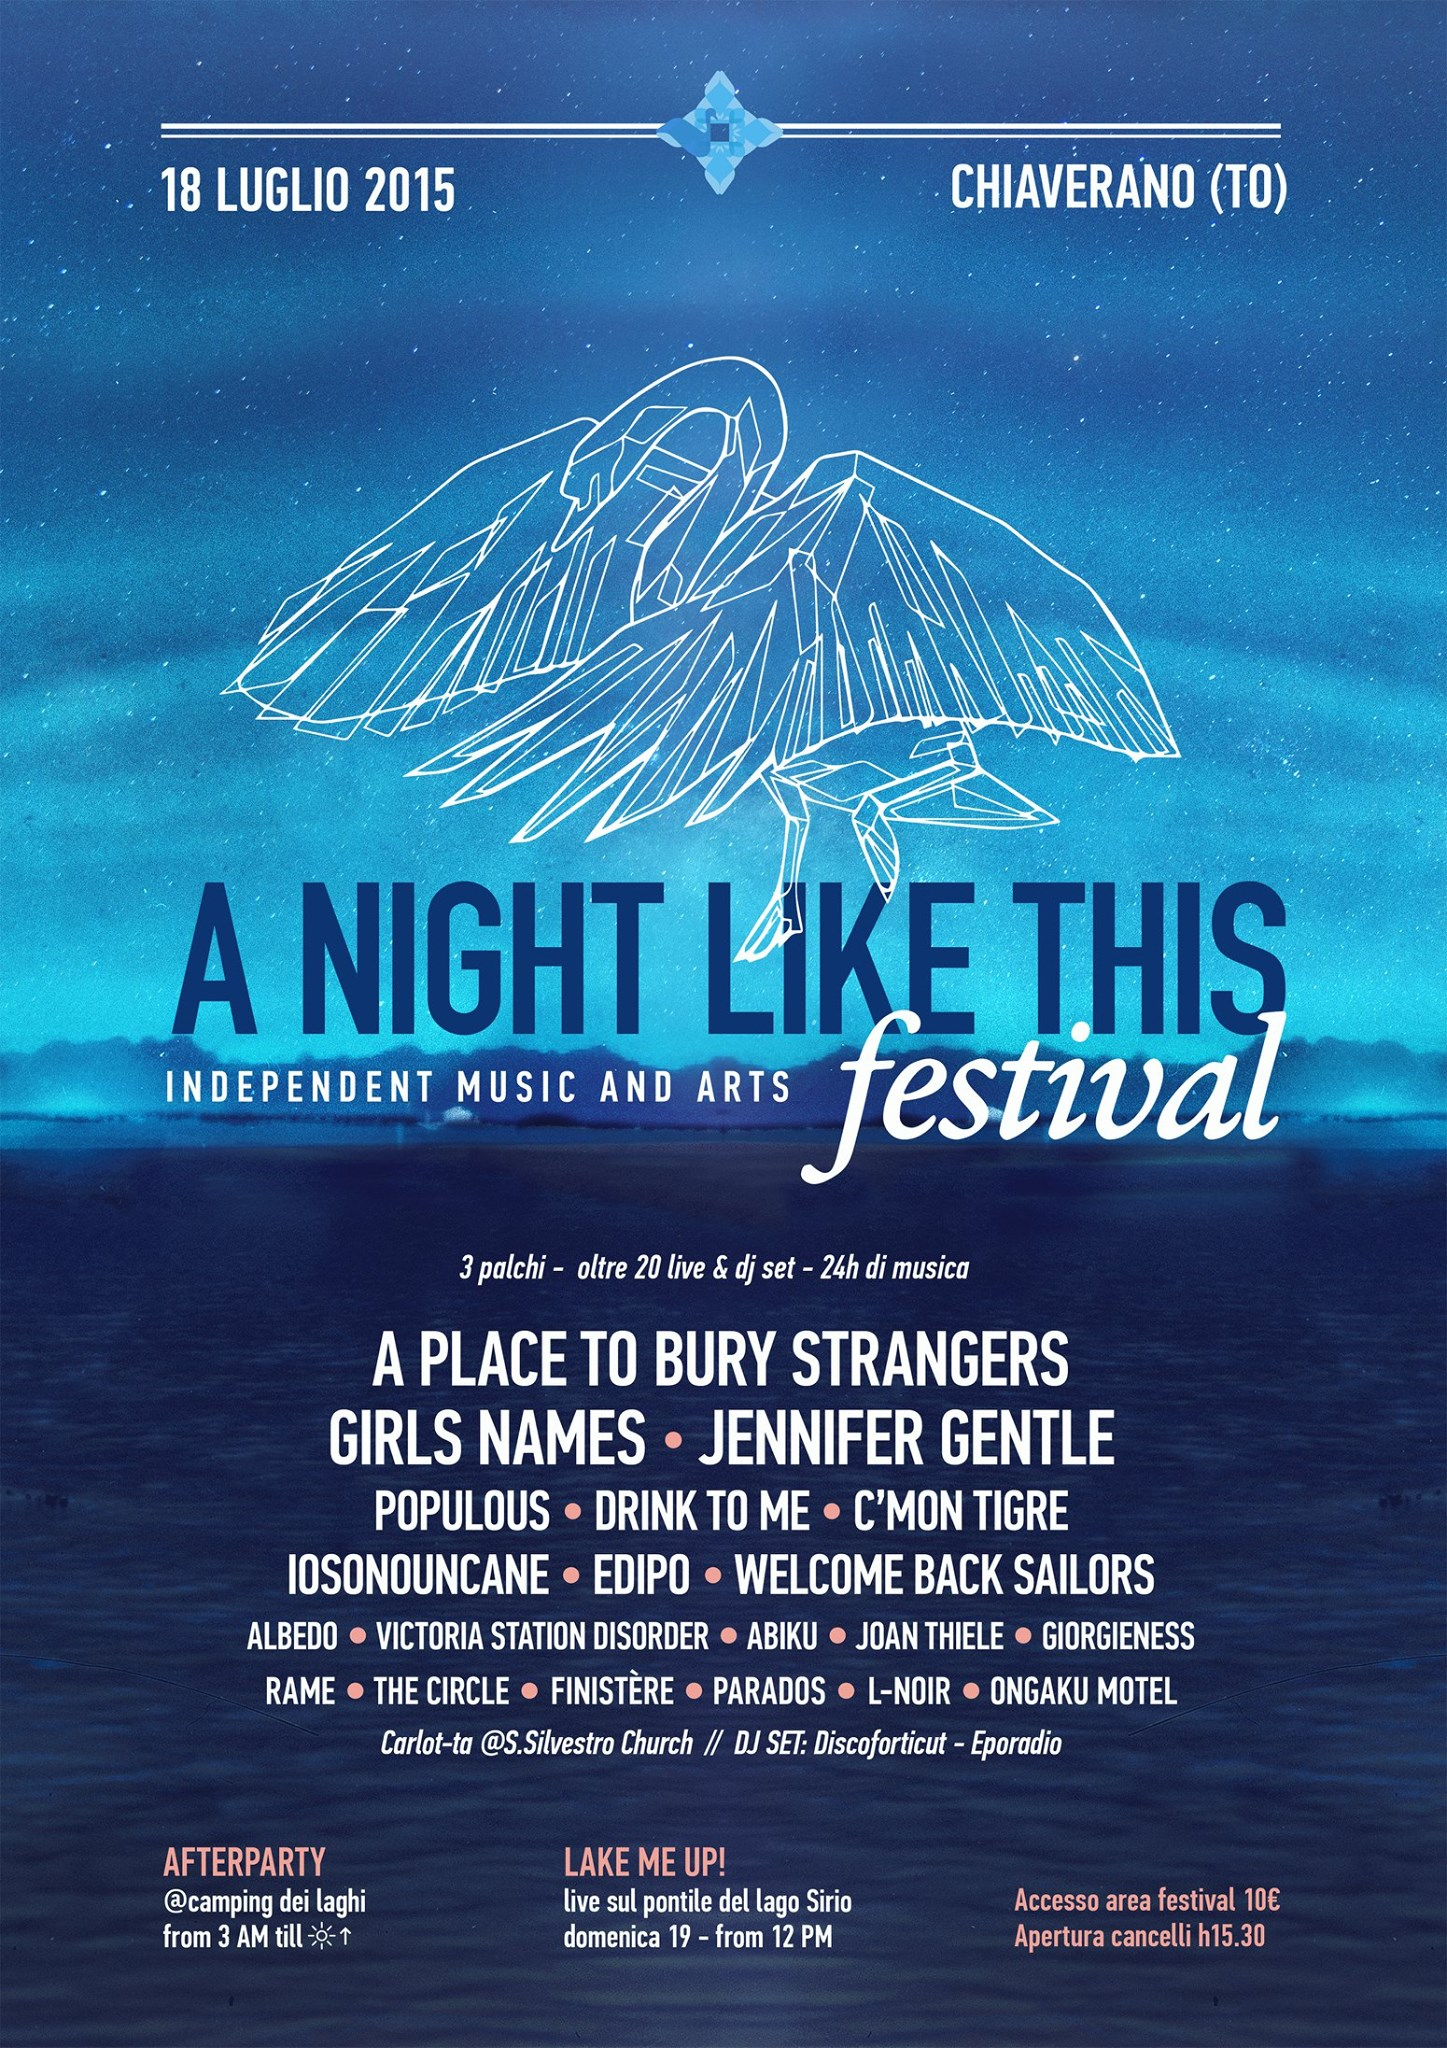 A Night Like This Festival